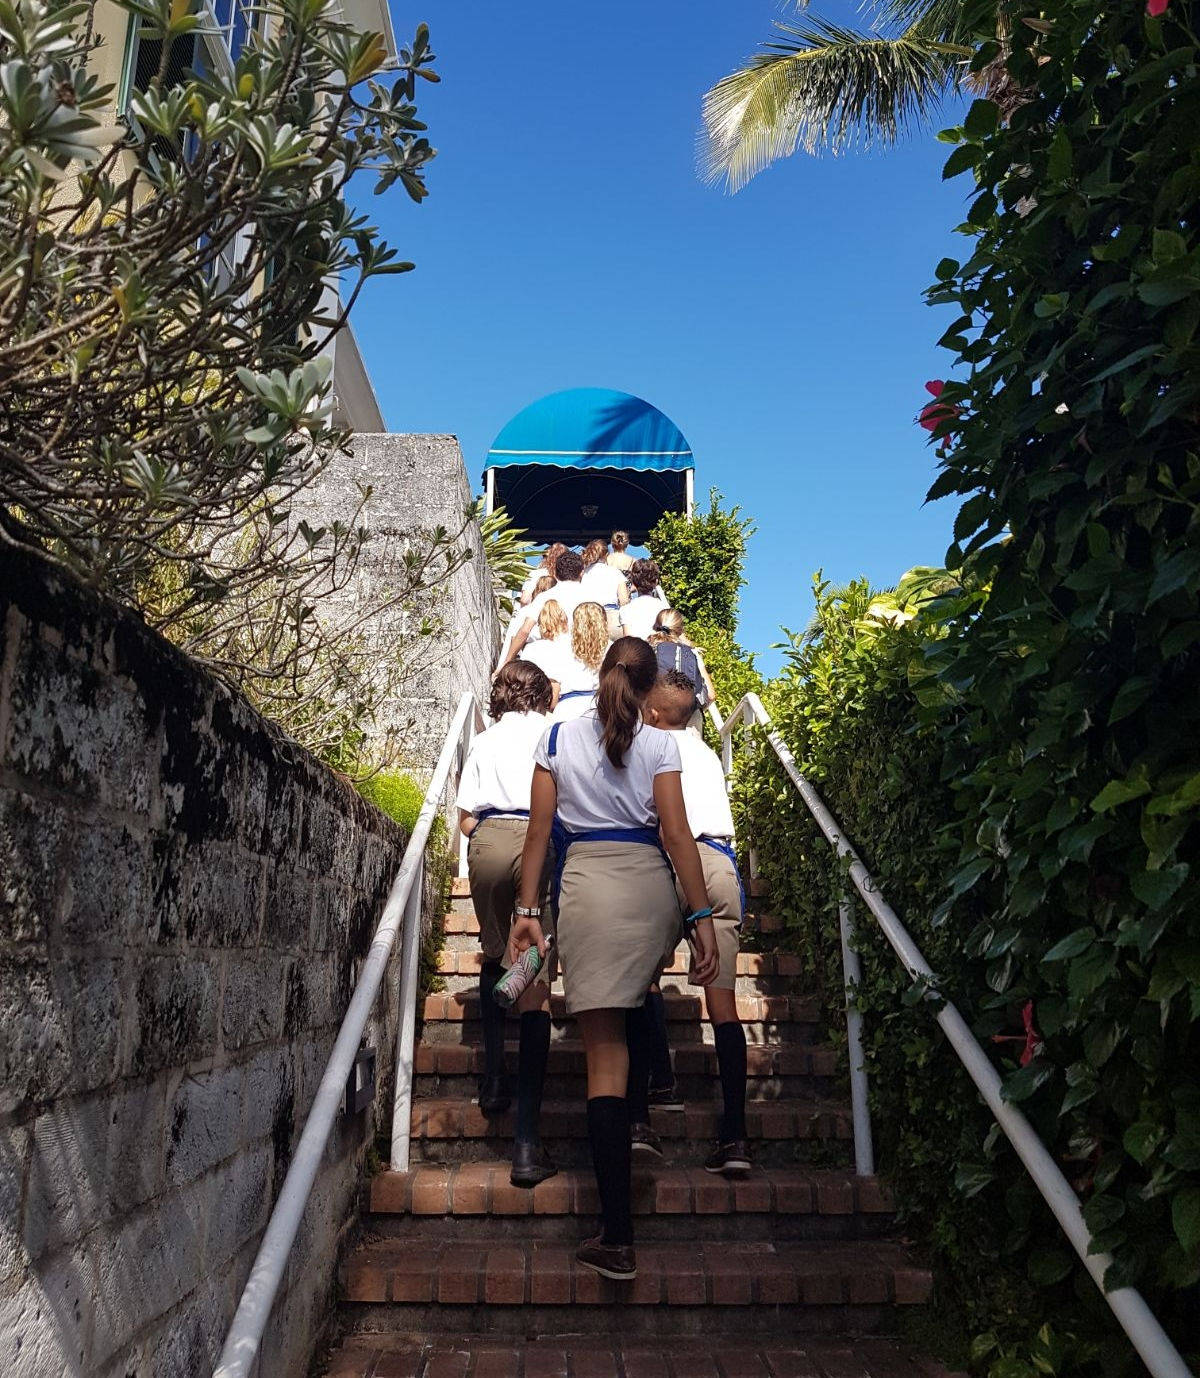 Going up the stairs.jpeg